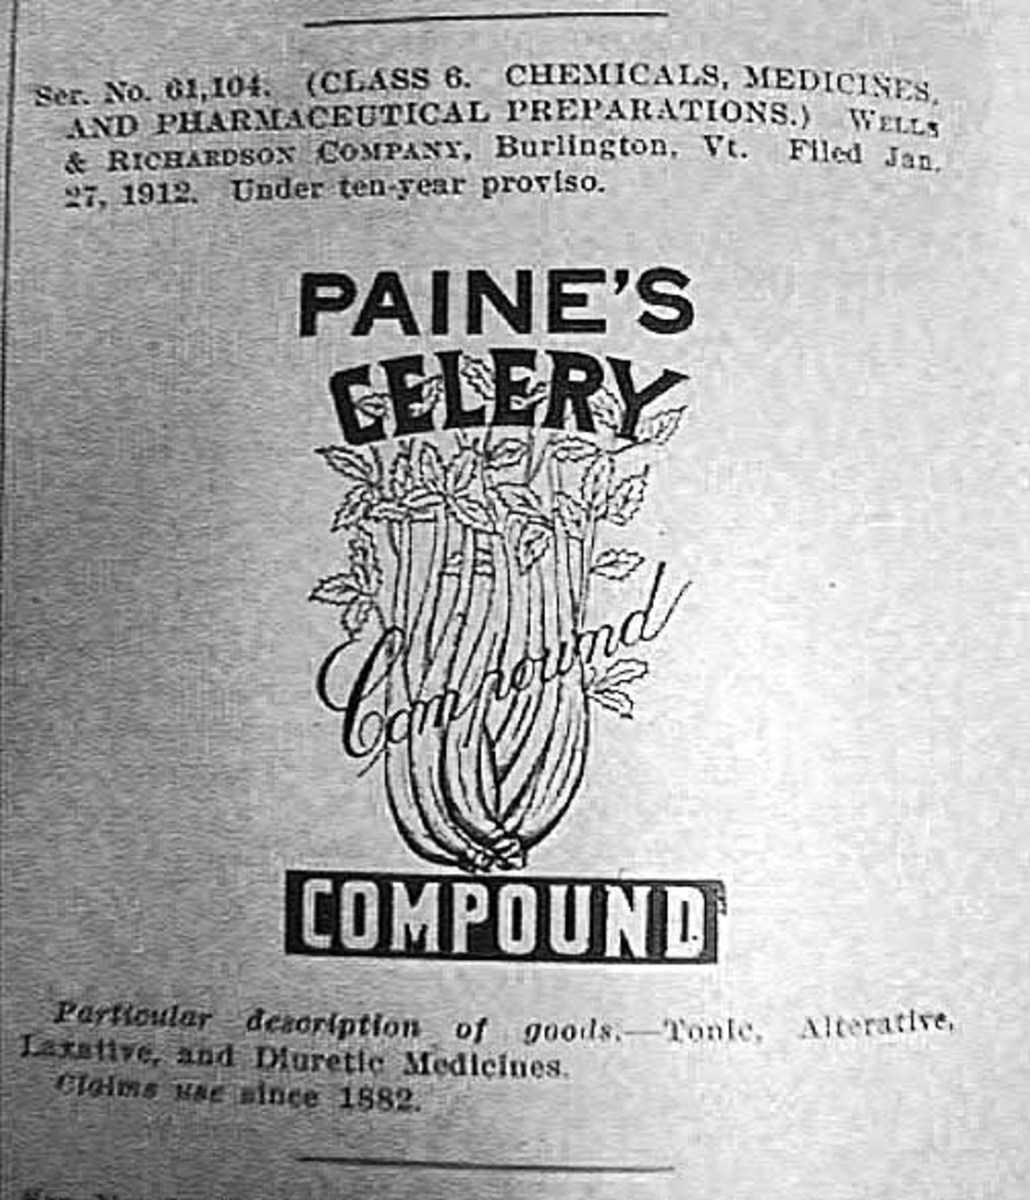 A very popular remedy of the 1800's.